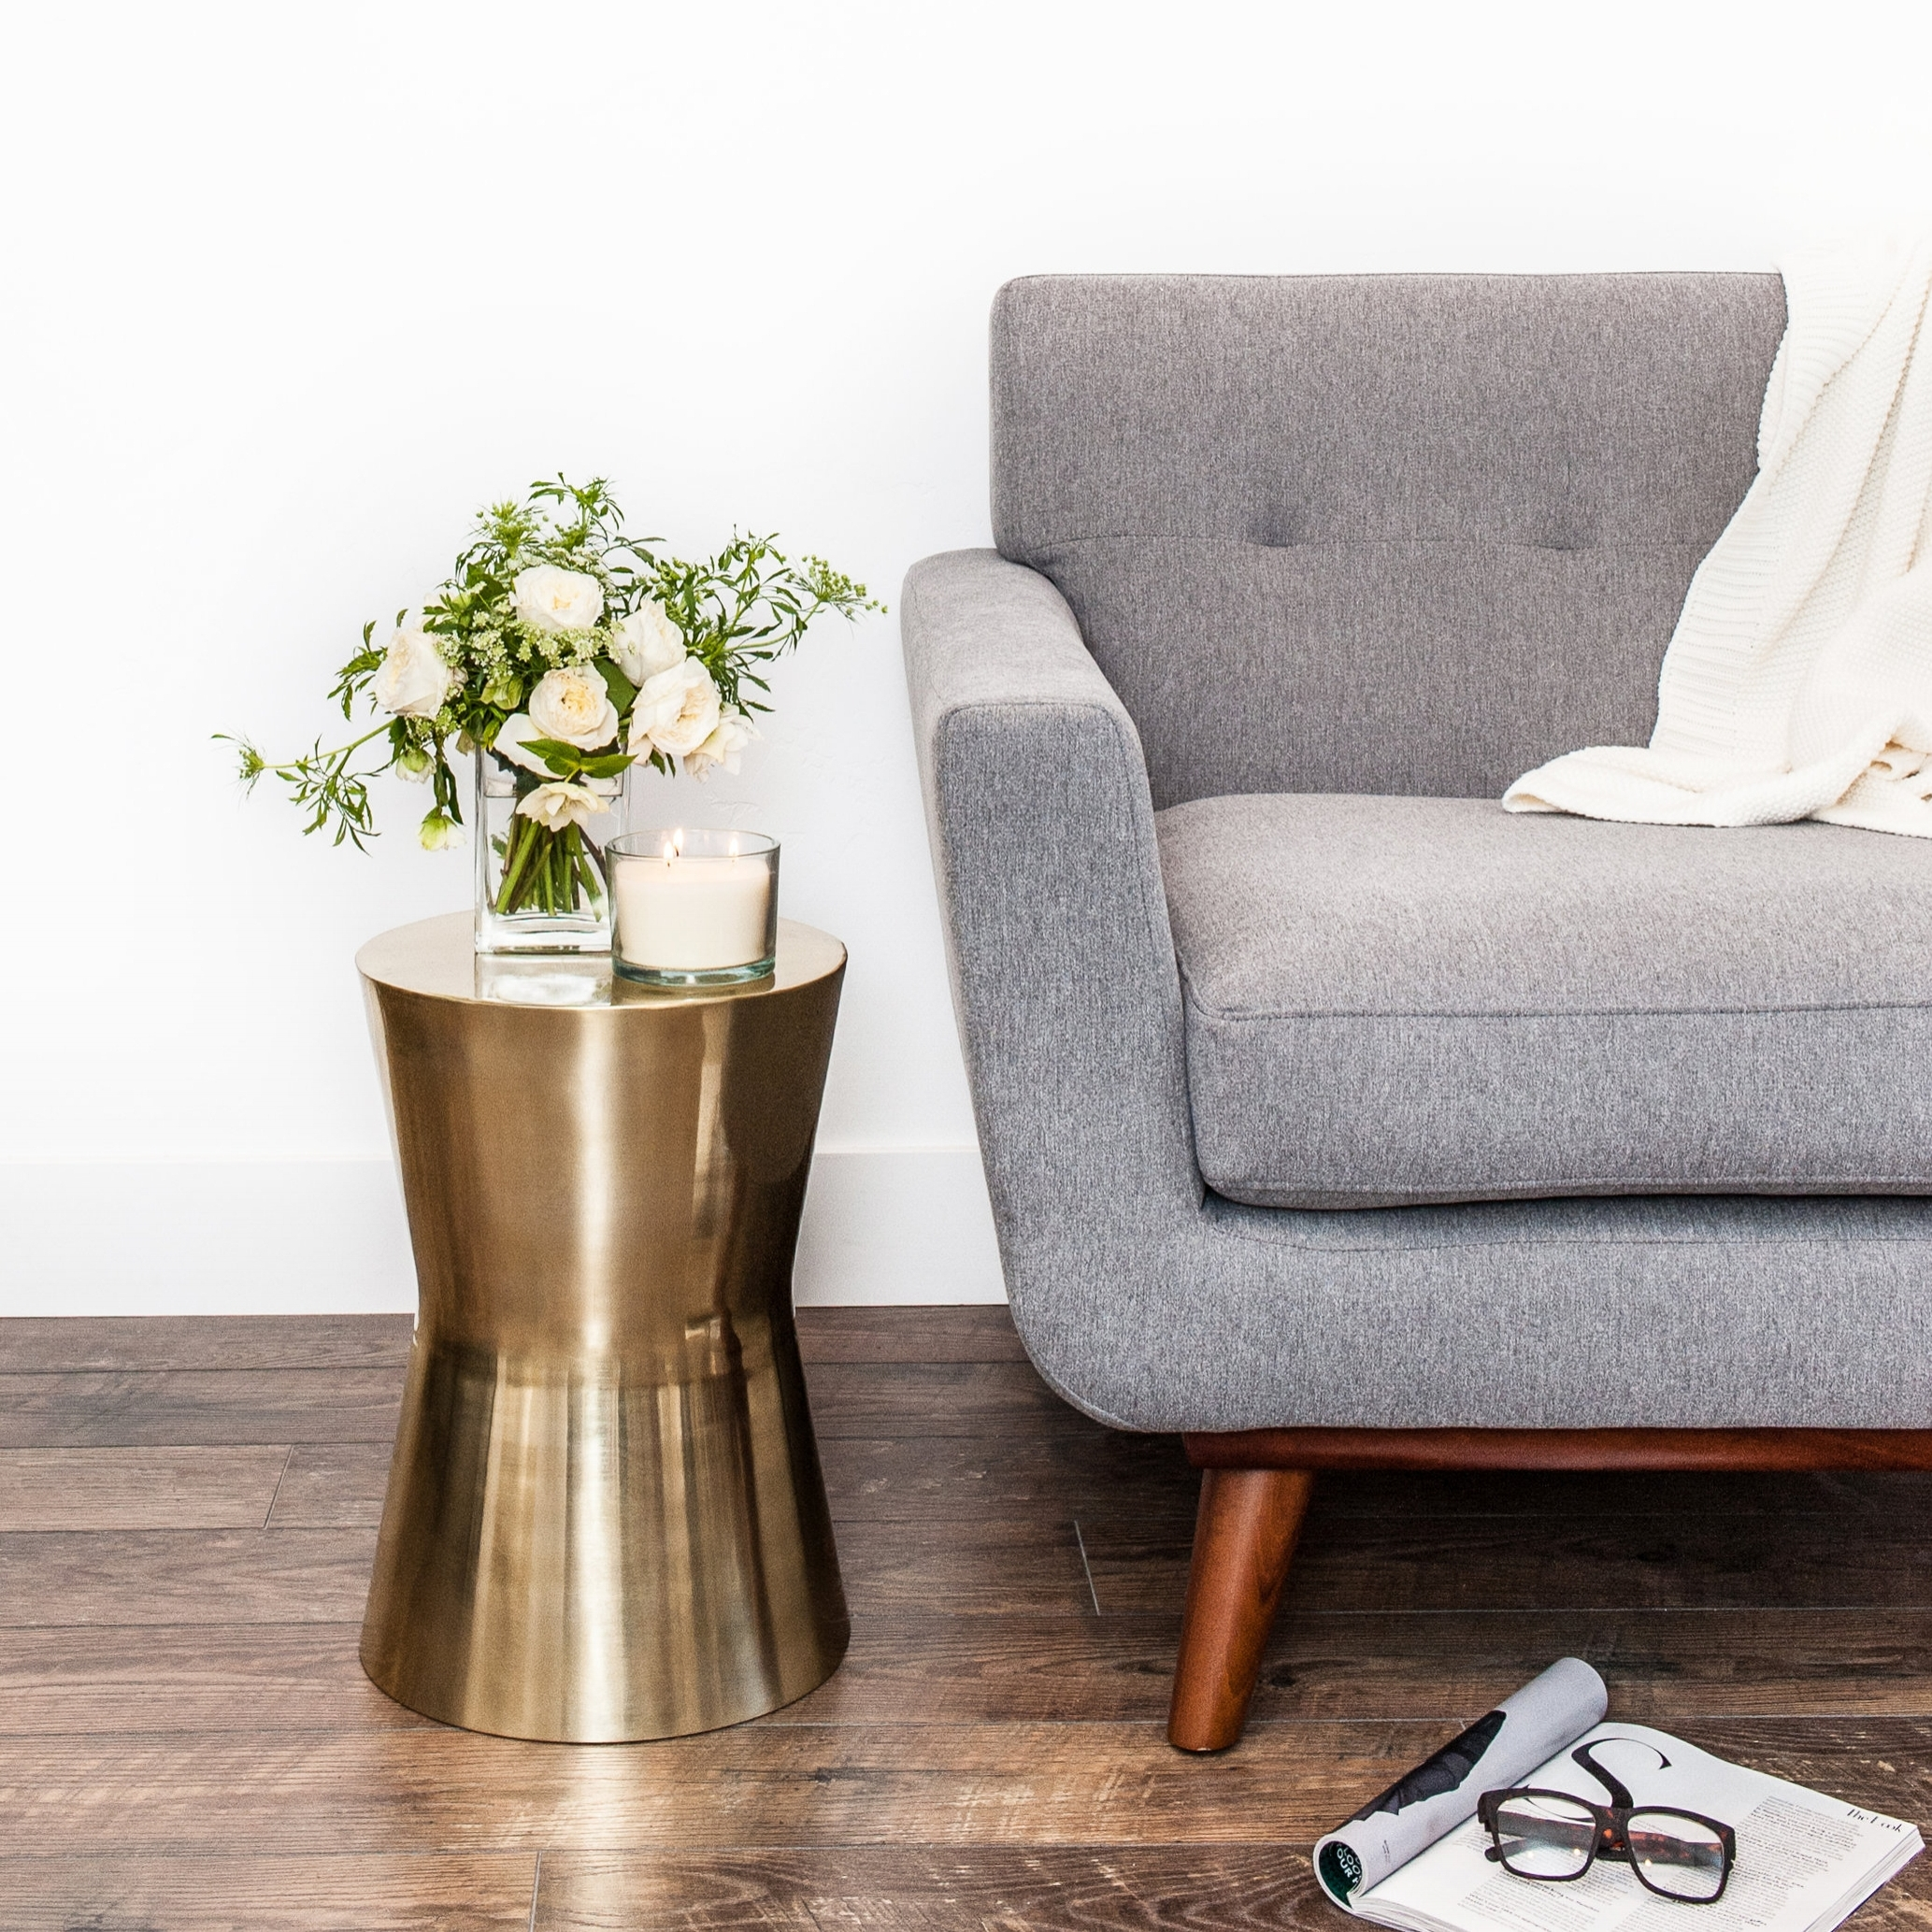 Grey Couch with Flowers and Candle.jpg